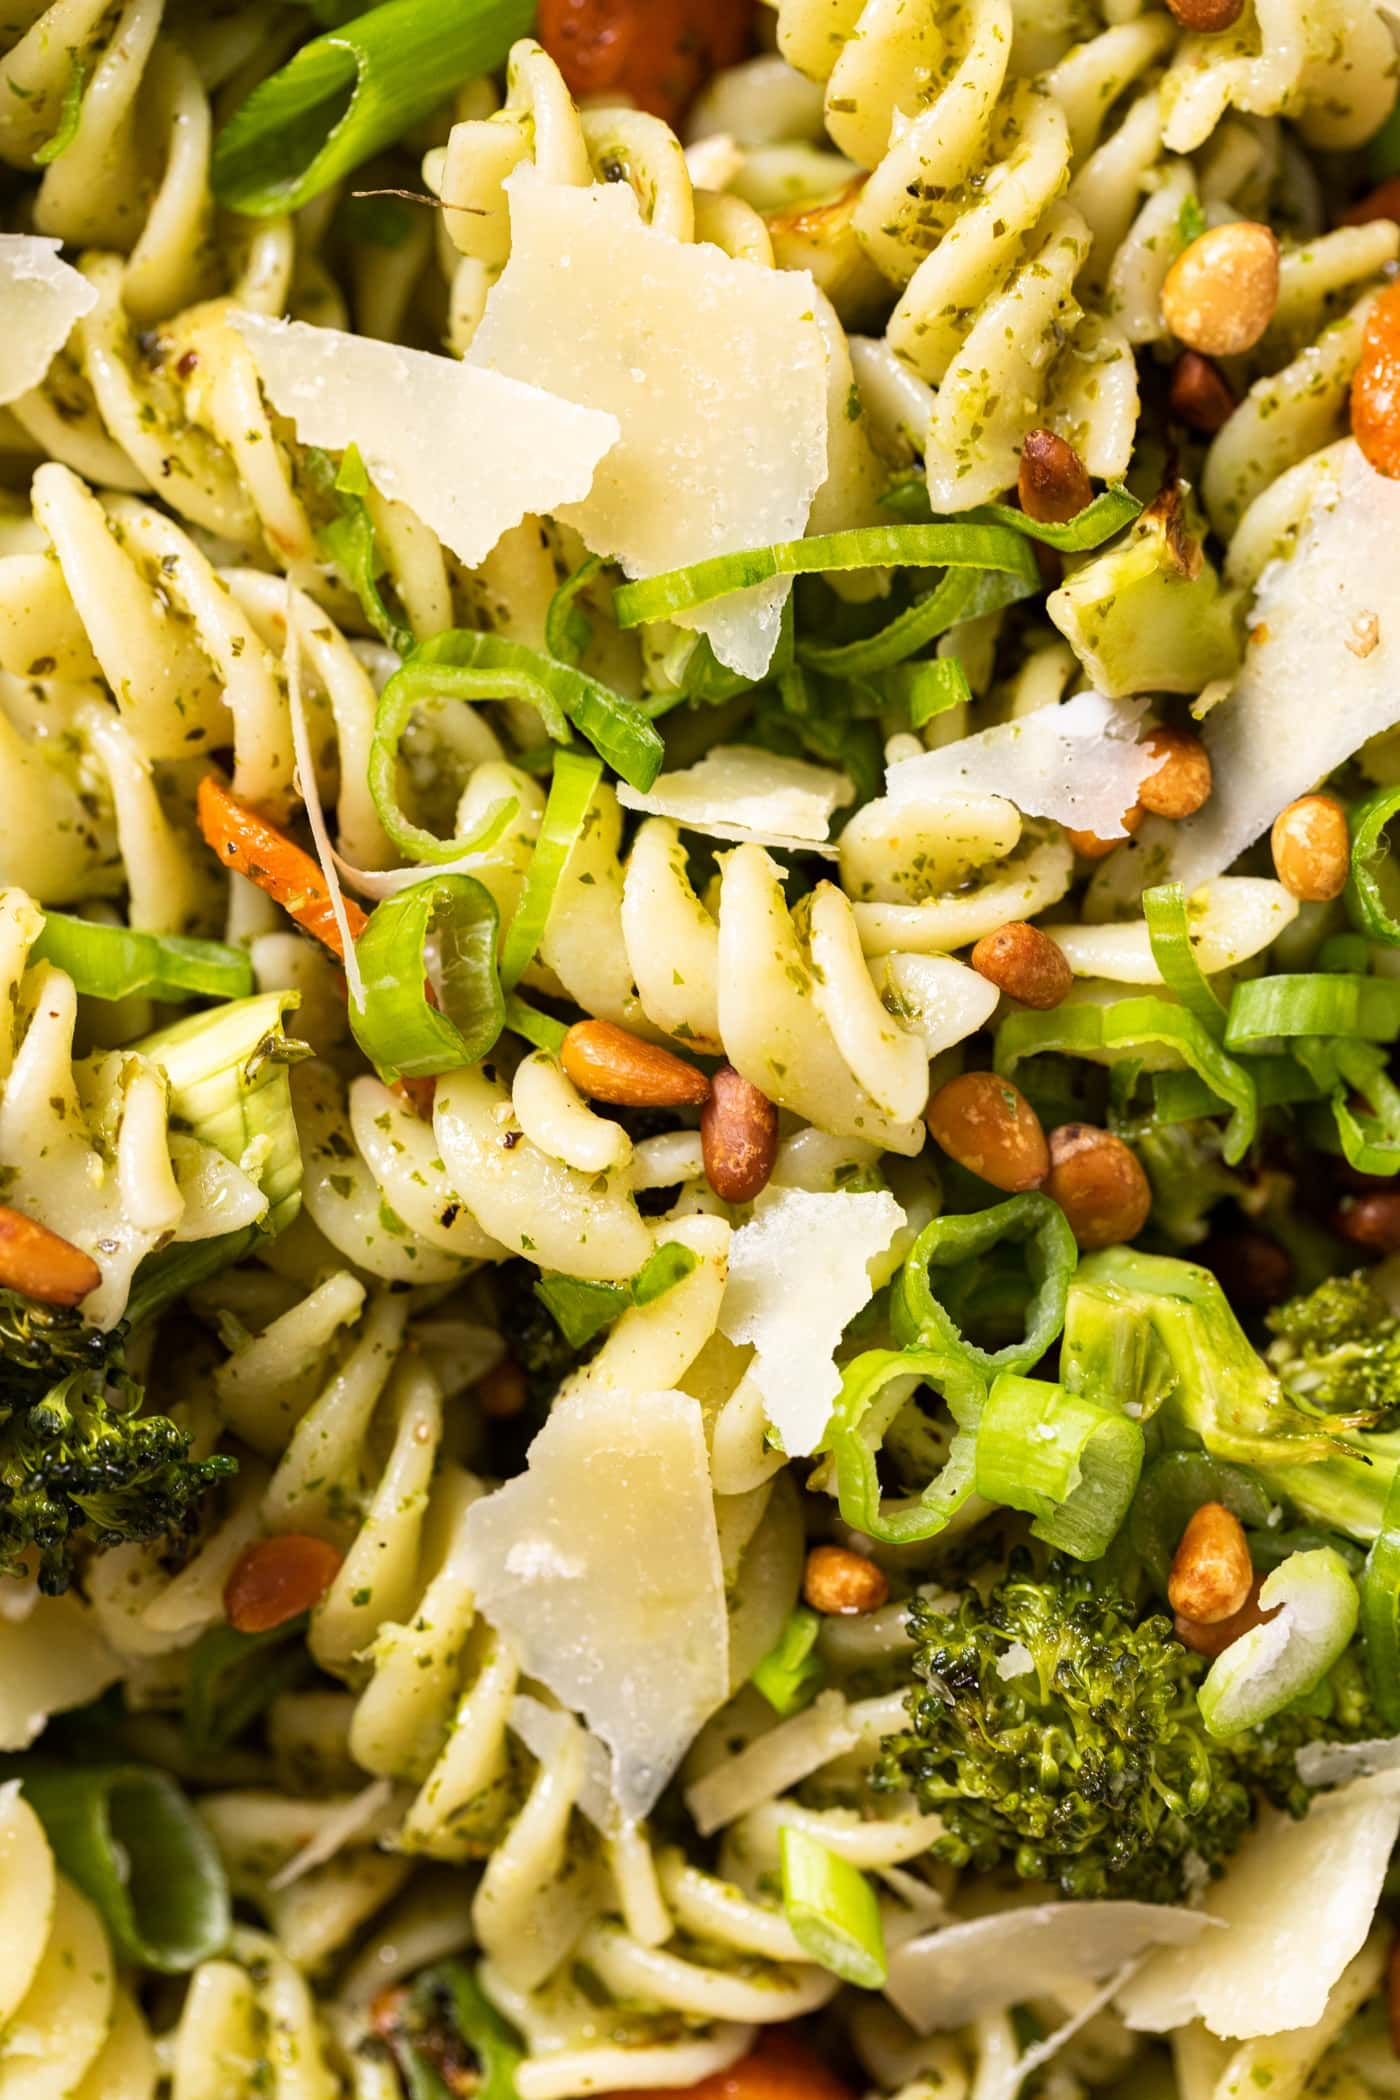 Close up view of cooked yellow pasta nestled with pieces of Parmesan cheese and broccoli and pine nuts